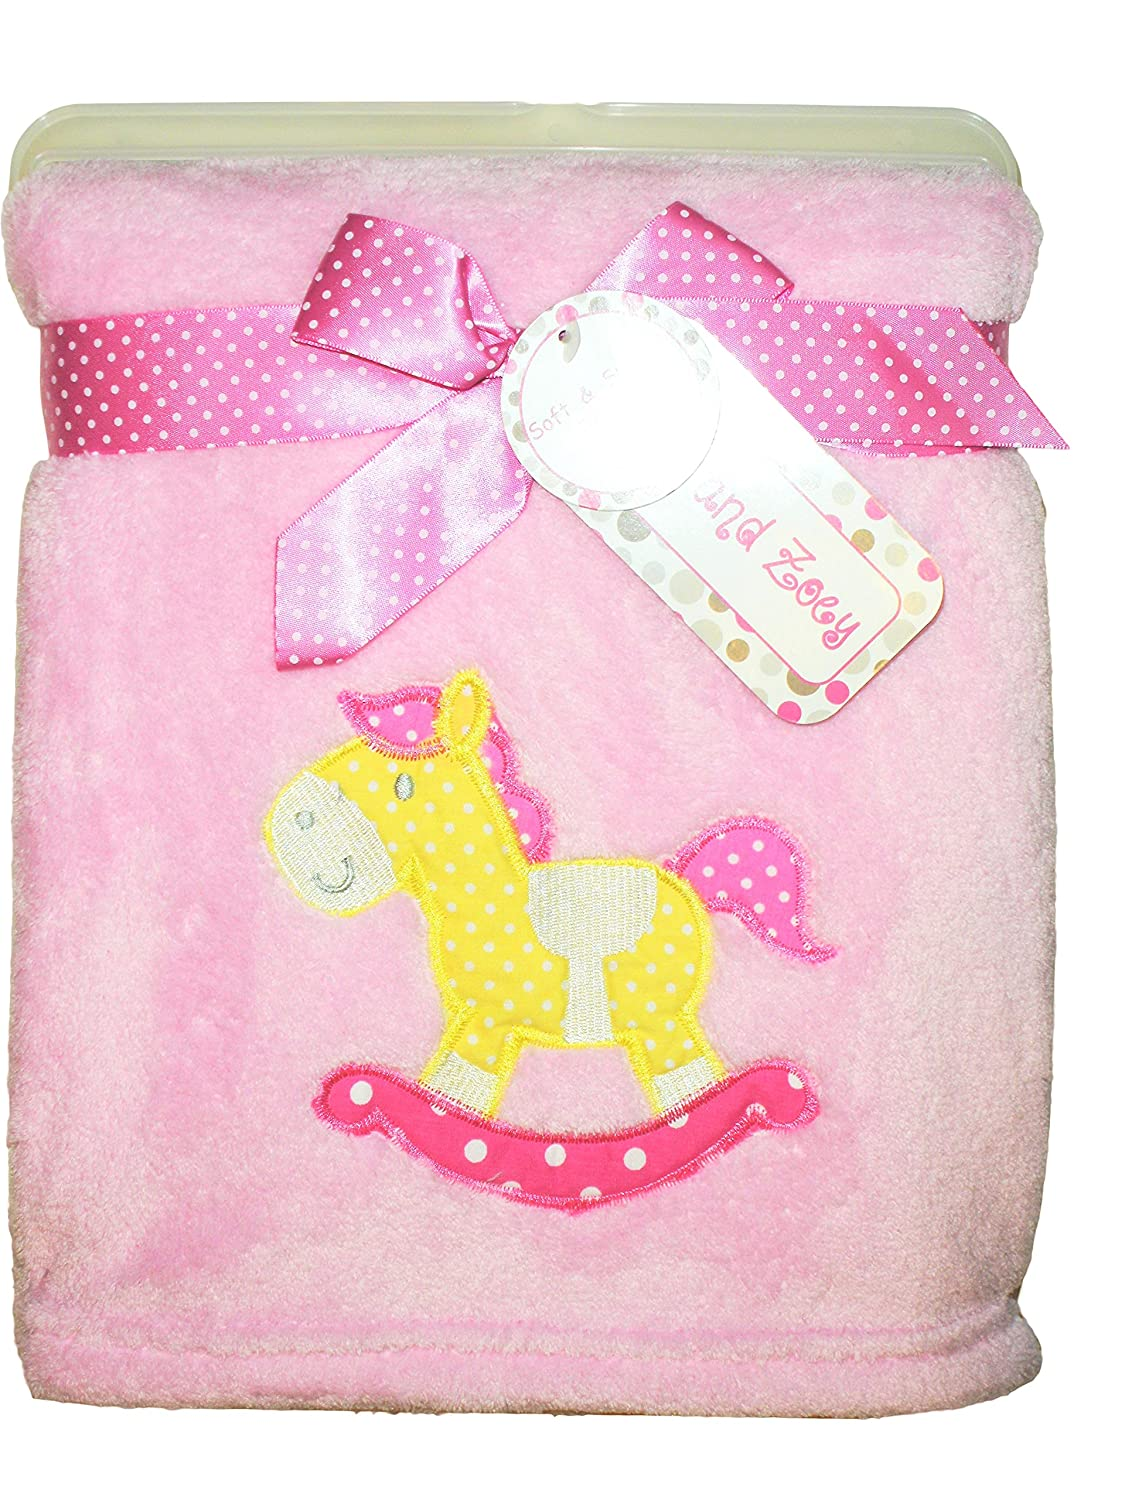 "Zak and Zoey Soft /& Snuggly Baby Blanket Pink /& Grey Arrows 30/"" x 40/"" NEW!"